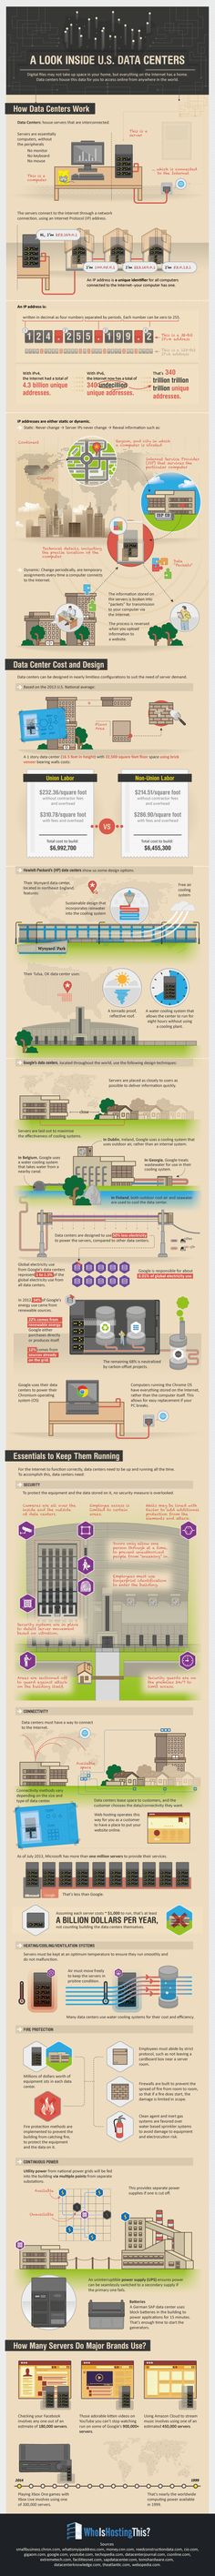 A Look Inside U.S. Data Centers #infographic